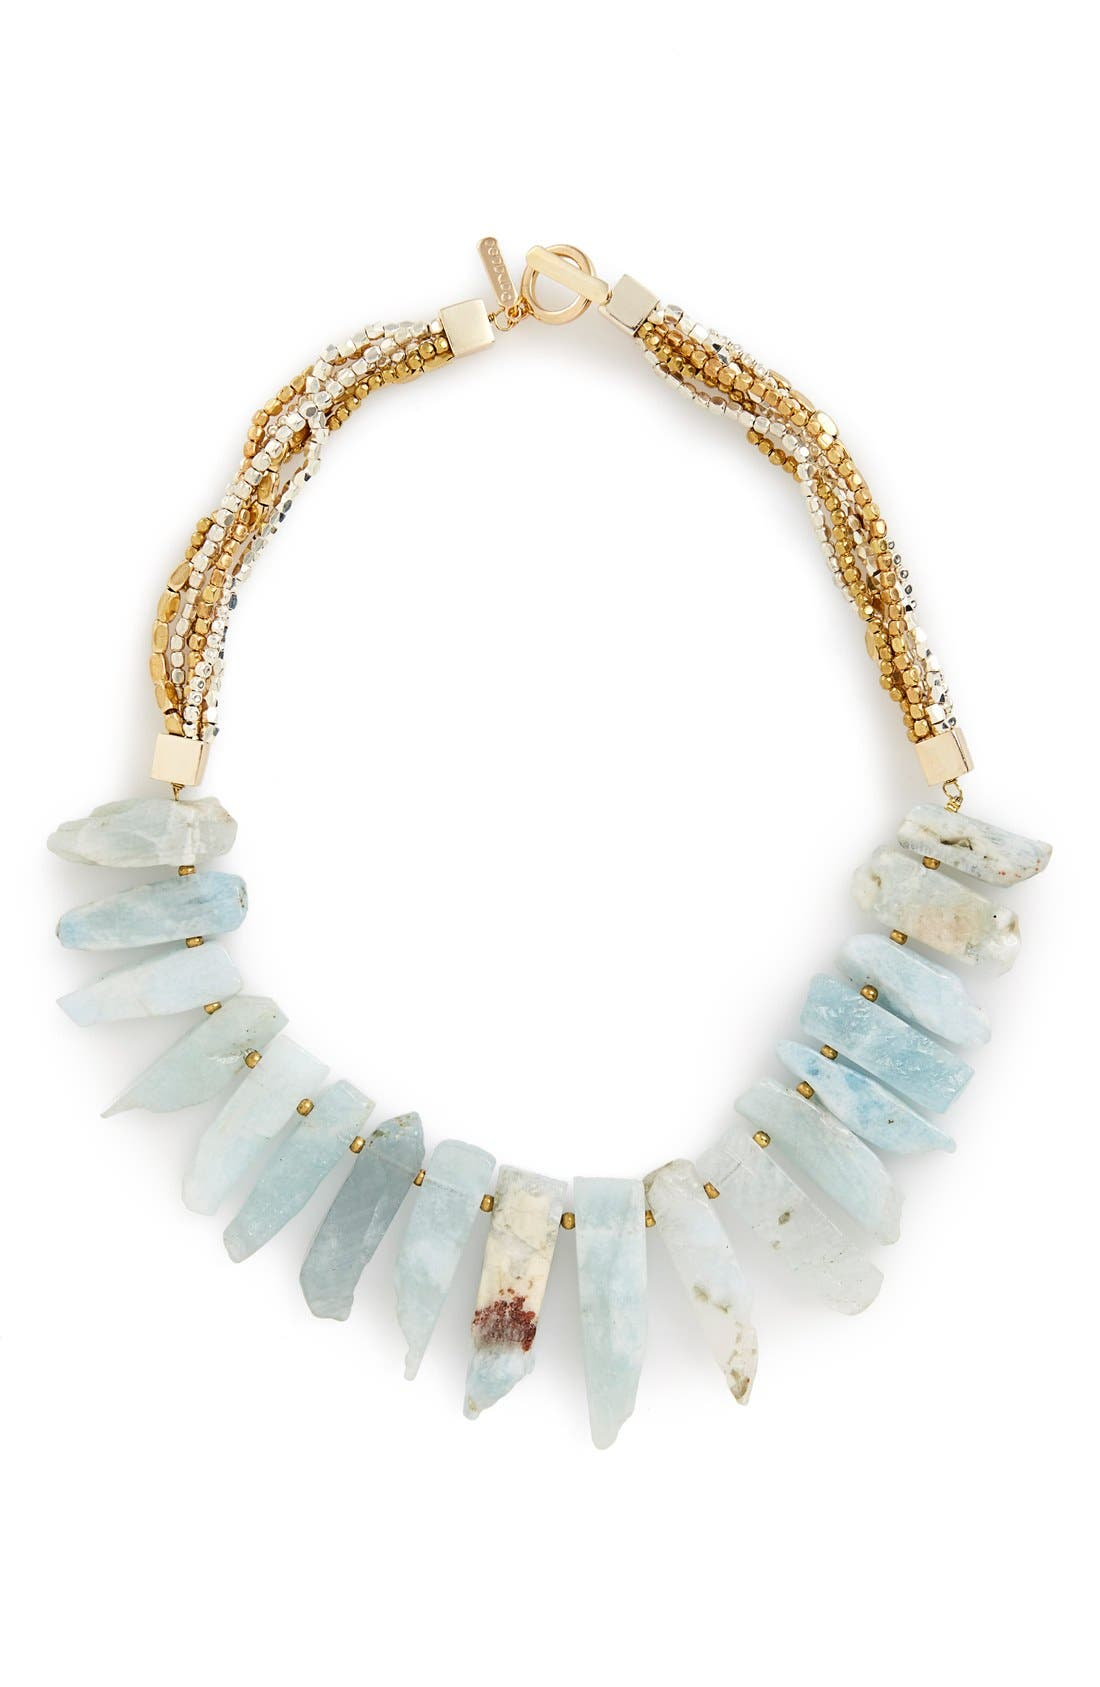 Main Image - Panacea Aquamarine Beaded Bib Necklace